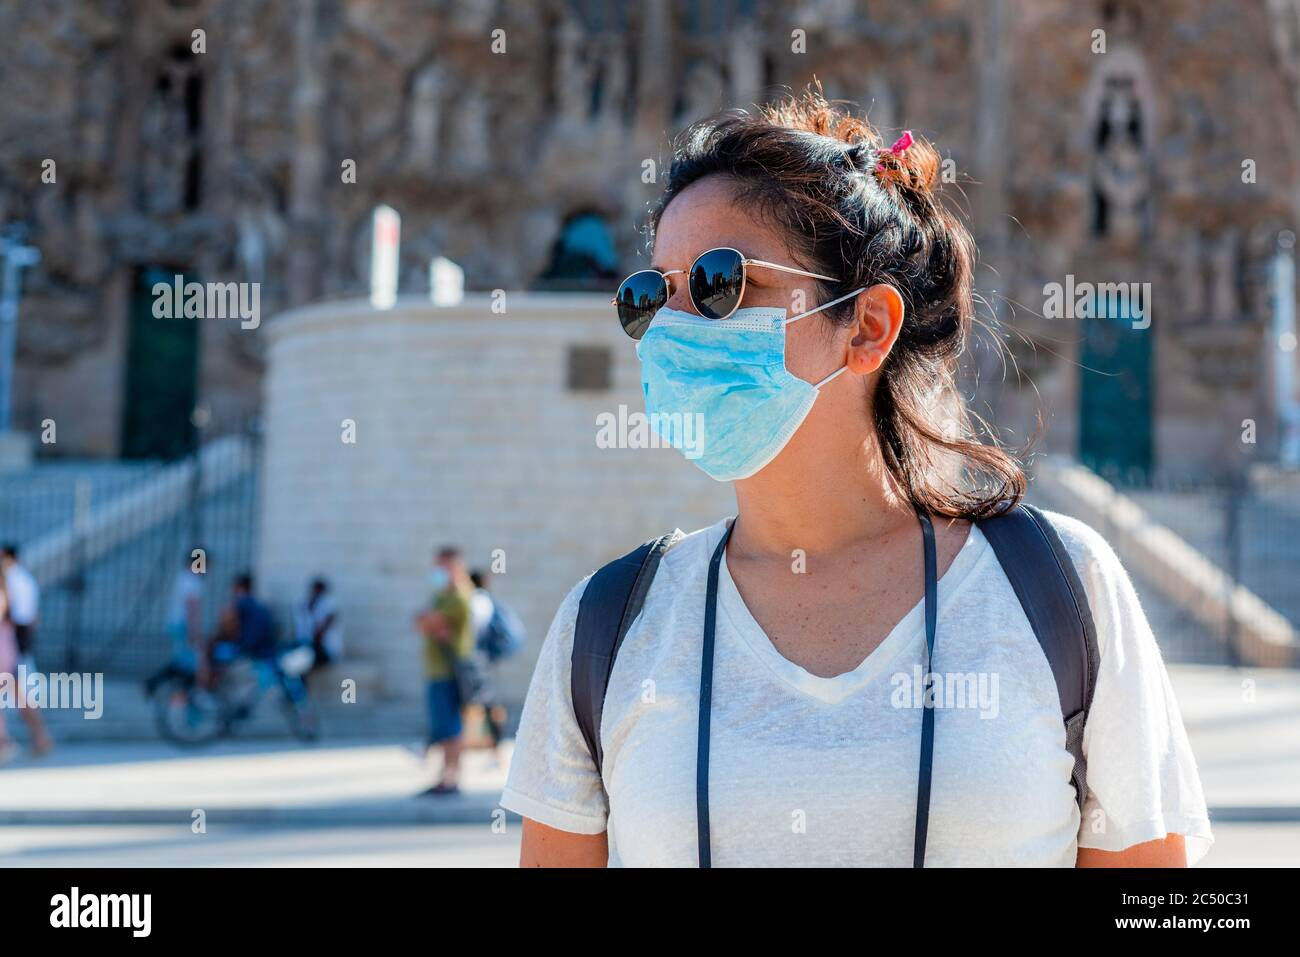 young tourist wearing face mask sightseing in european city. traveling and tourism industry during the corona virus pandemic and covid19 disease, affe Stock Photo